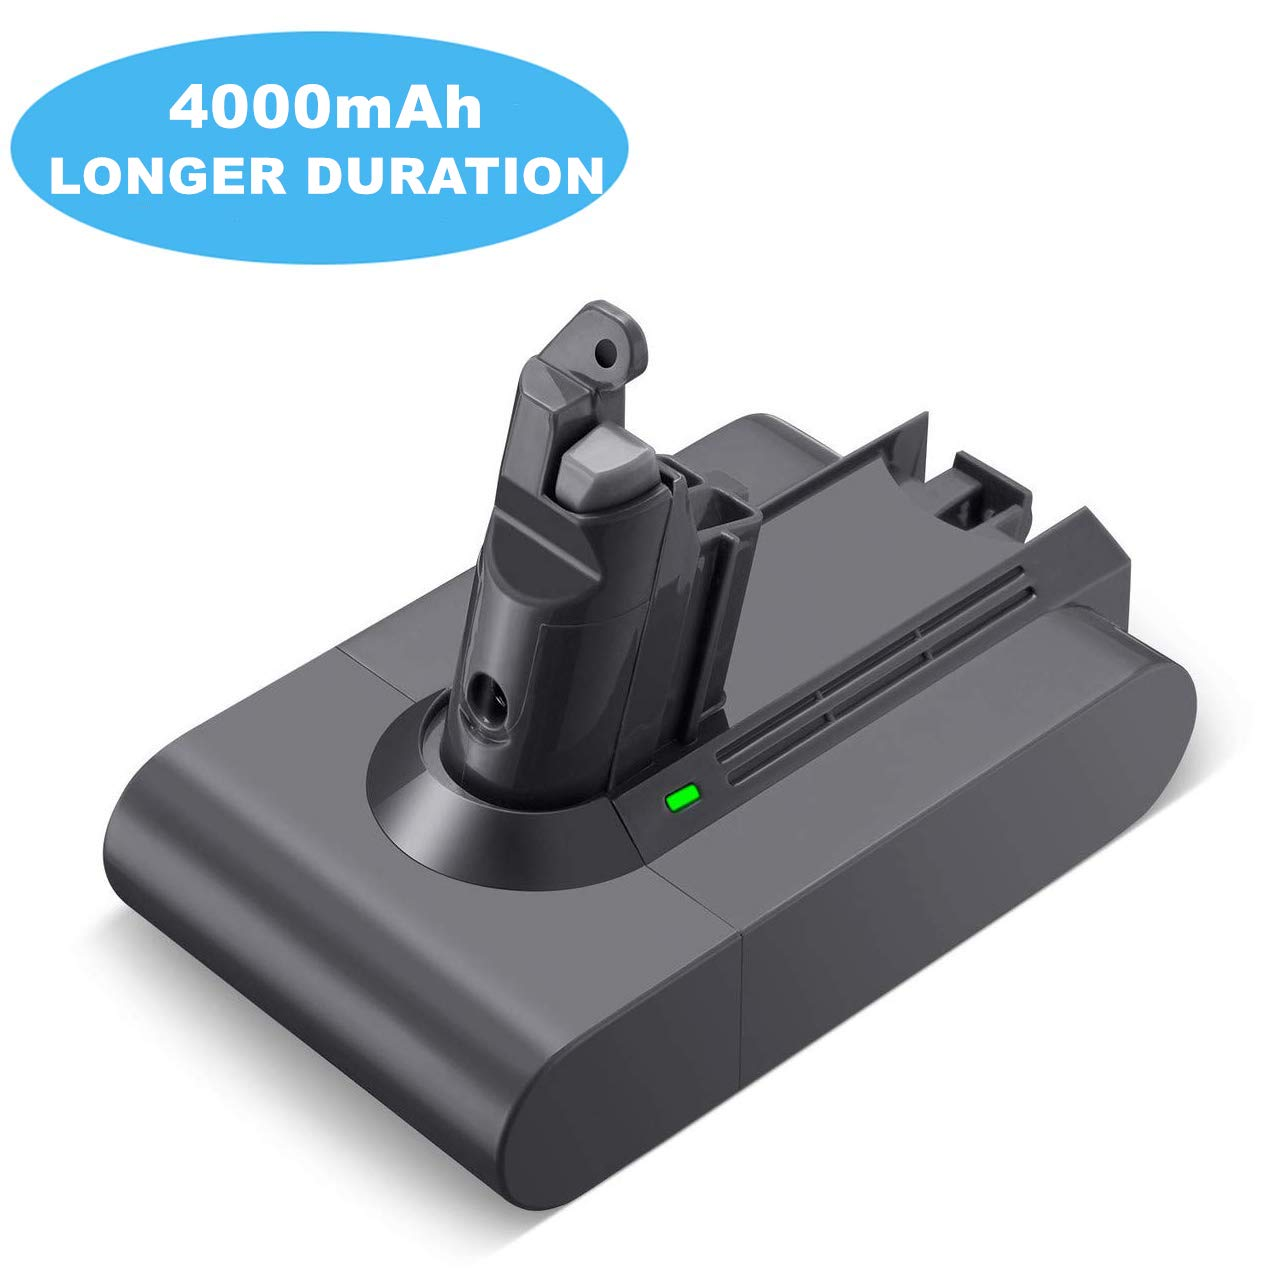 4000mAh V6 Battery 21.6v Li-ion Replacement for Dyson V6 DC58 DC59 DC61 DC62 Animal DC72 DC74 Series Cordless Handhold Pet Version Vacuum